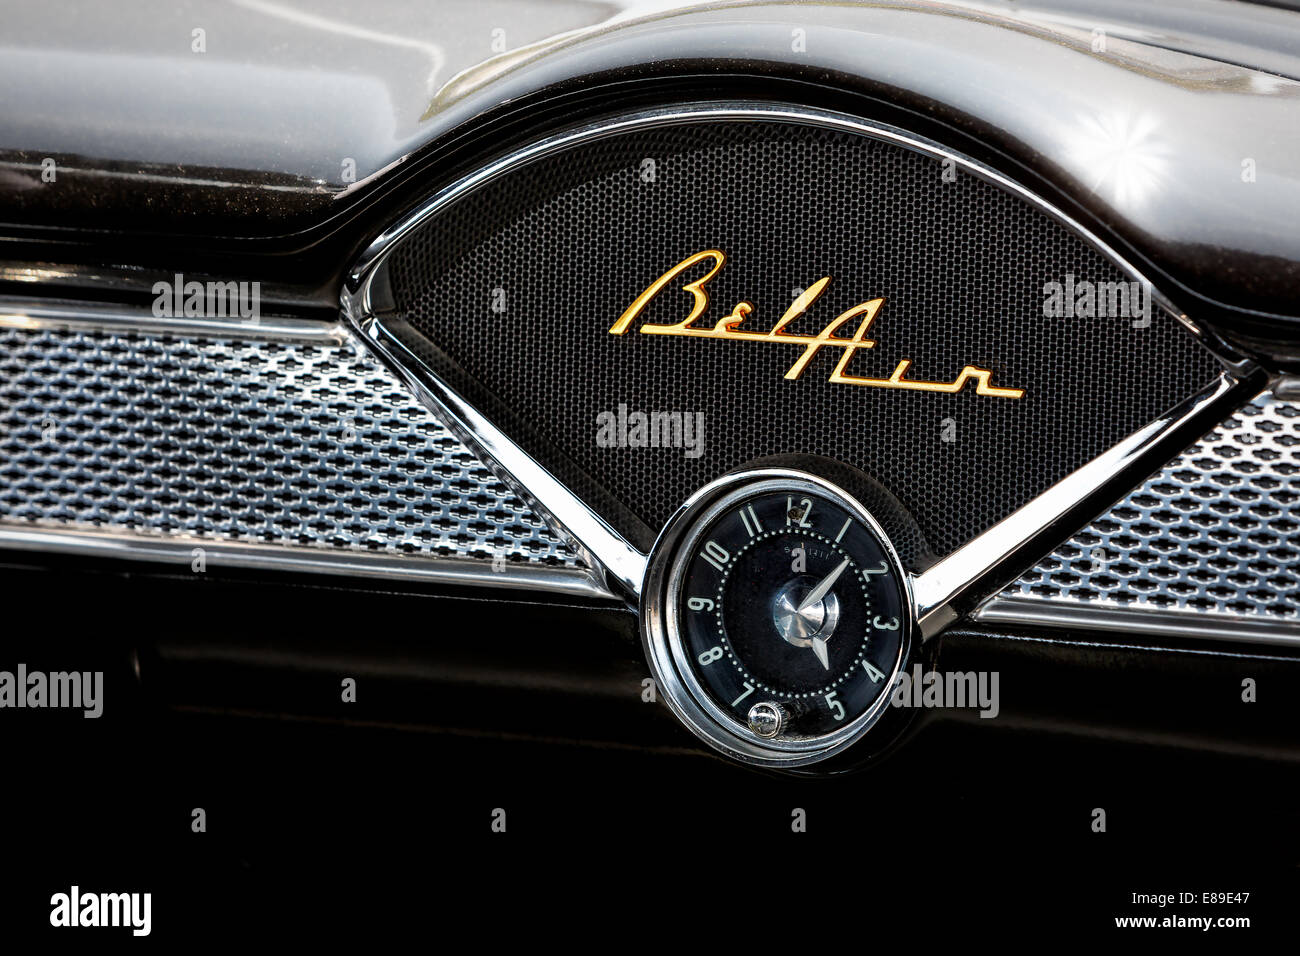 1955 chevy belair interior view to this black and chrome belair emblem clock and